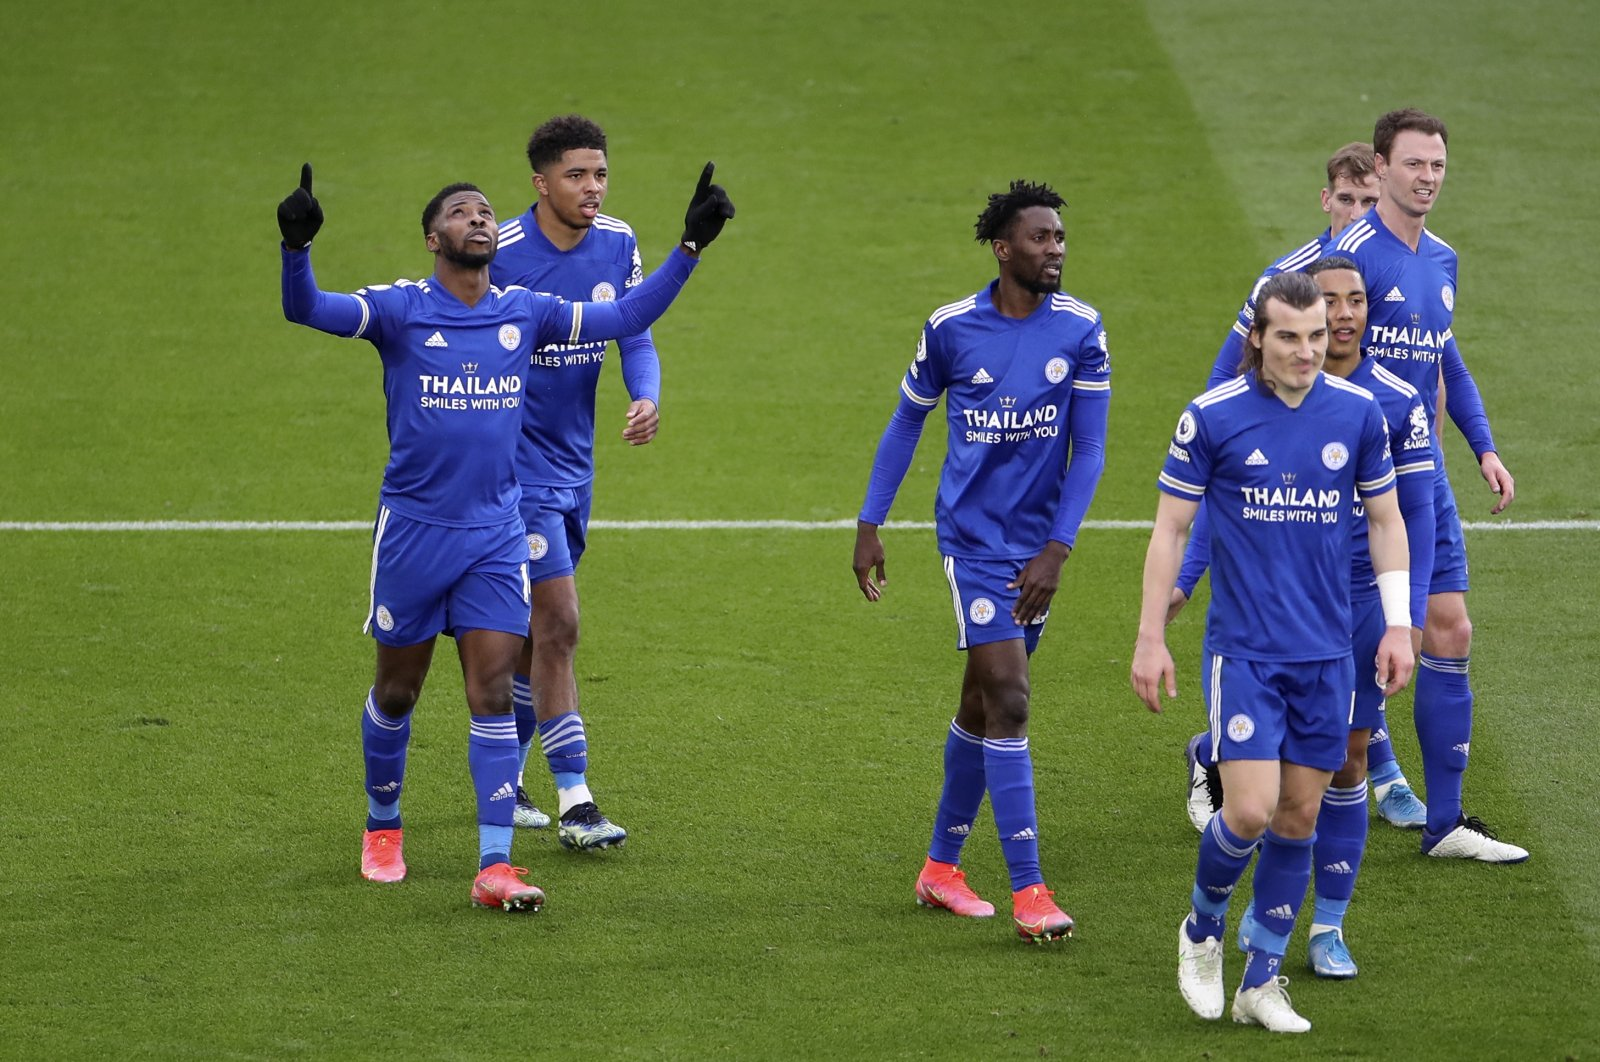 Leicester City's Kelechi Iheanacho (L) celebrates with teammates after scoring a goal against Sheffield United at the King Power Stadium, Leicester, Britain, March 14, 2021.